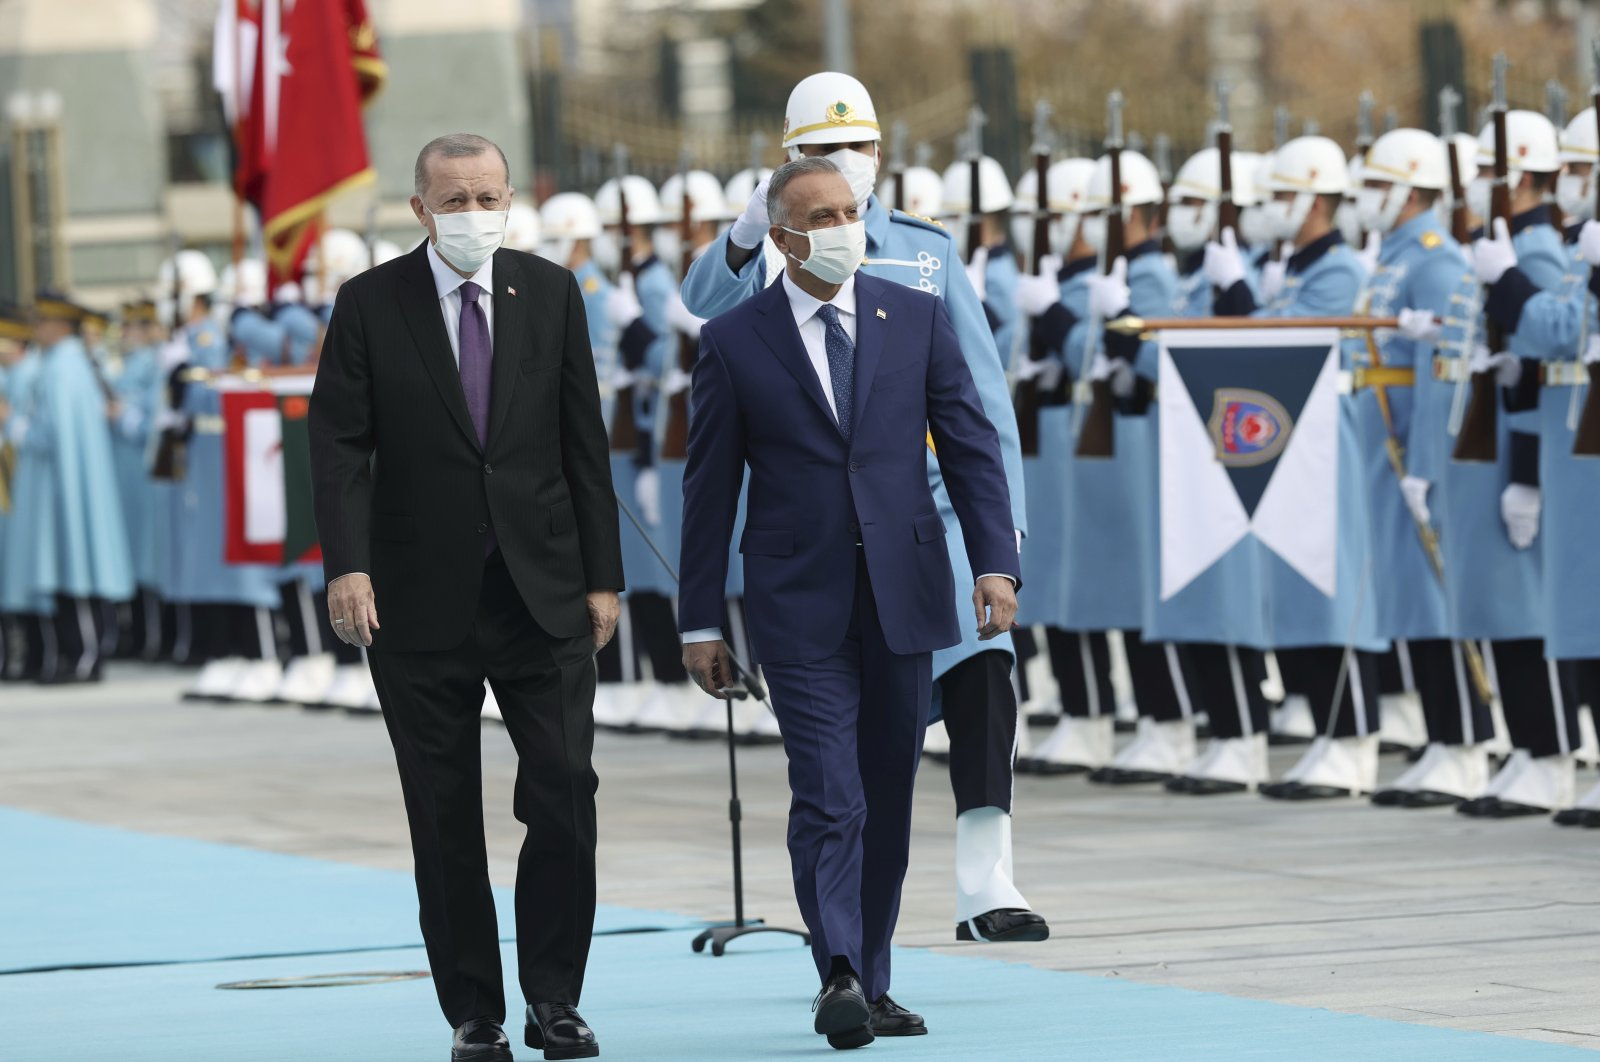 President Recep Tayyip Erdoğan walks with Iraqi Prime Minister Mustafa al-Kadhimi during a welcome ceremony at the Presidential Complex, capital Ankara, Turkey, Dec. 17, 2020. (AP Photo)